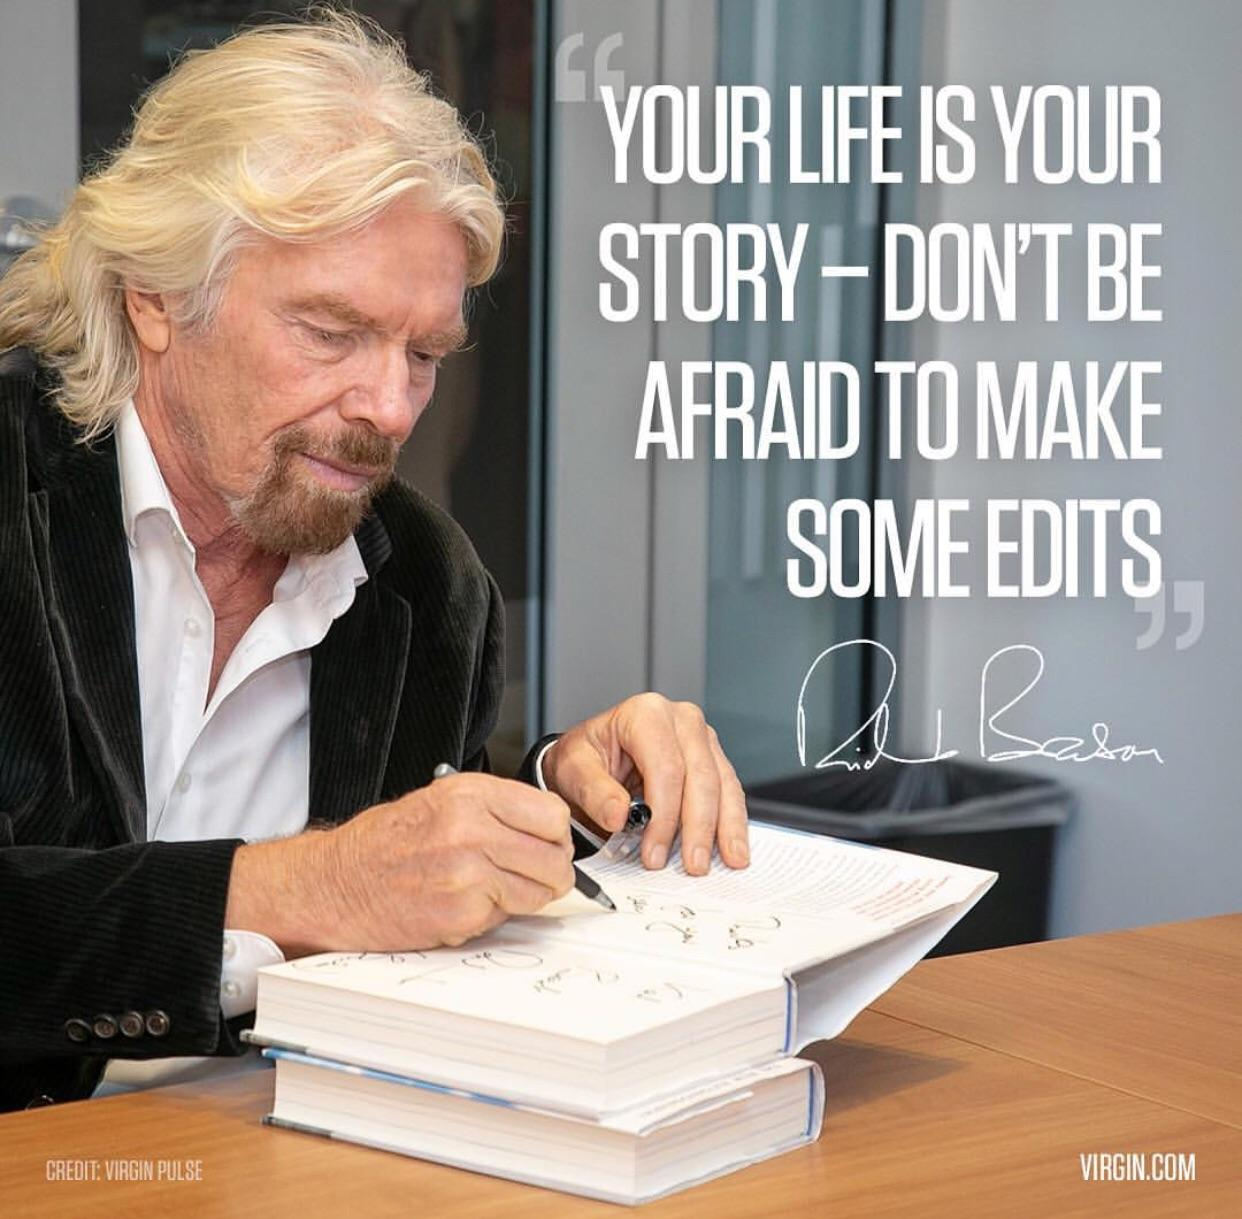 [IMAGE] Your Life Is Your Story